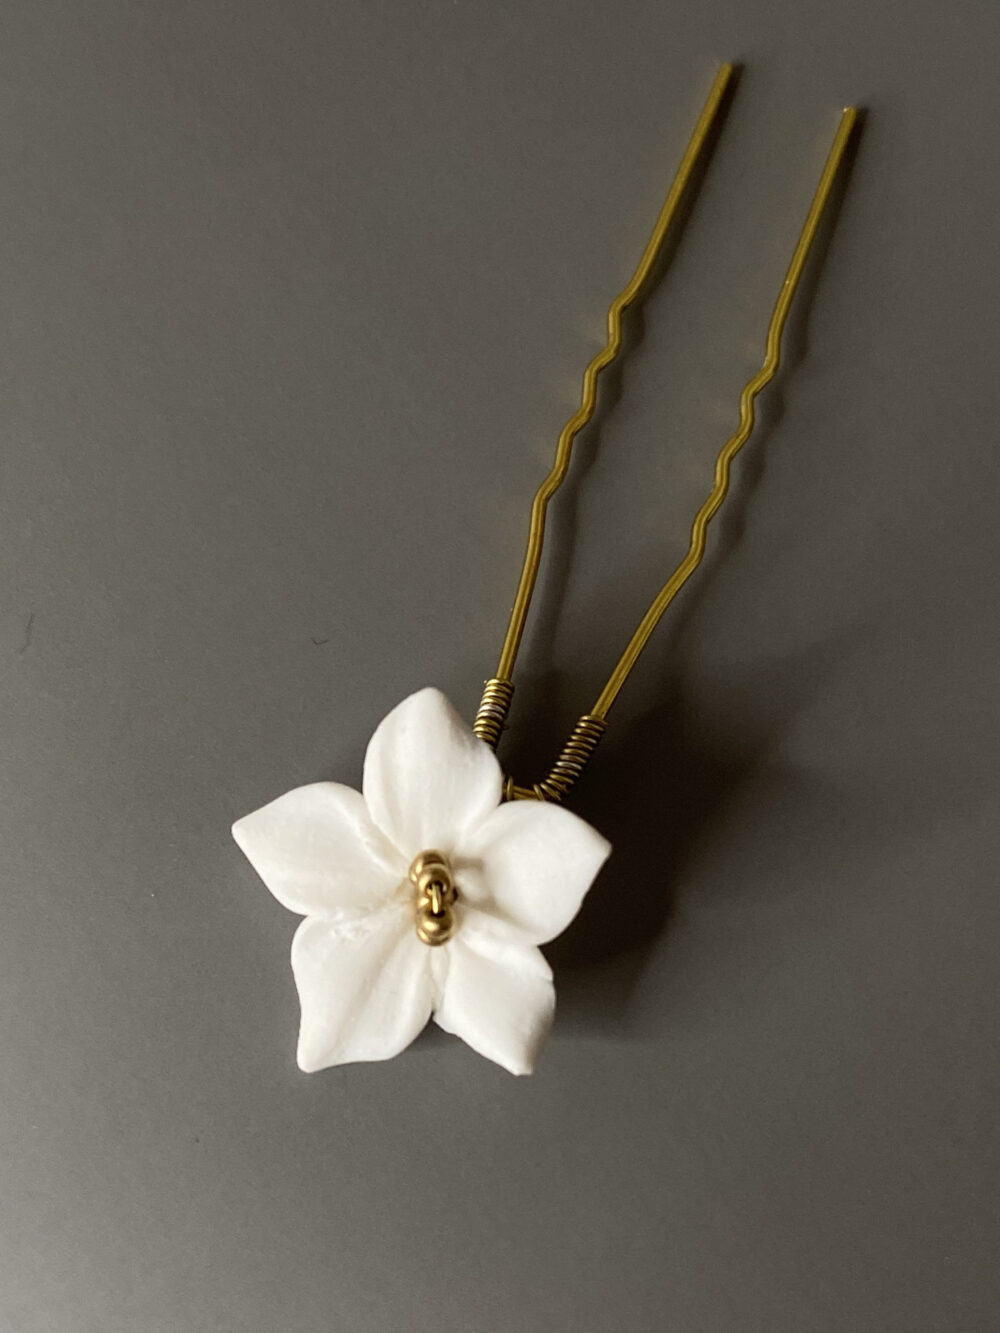 Wedding Ivory Flowers Hair Pin, Bridal Floral Ivory Gold Headpiece, Flower Accessories, Floral Design